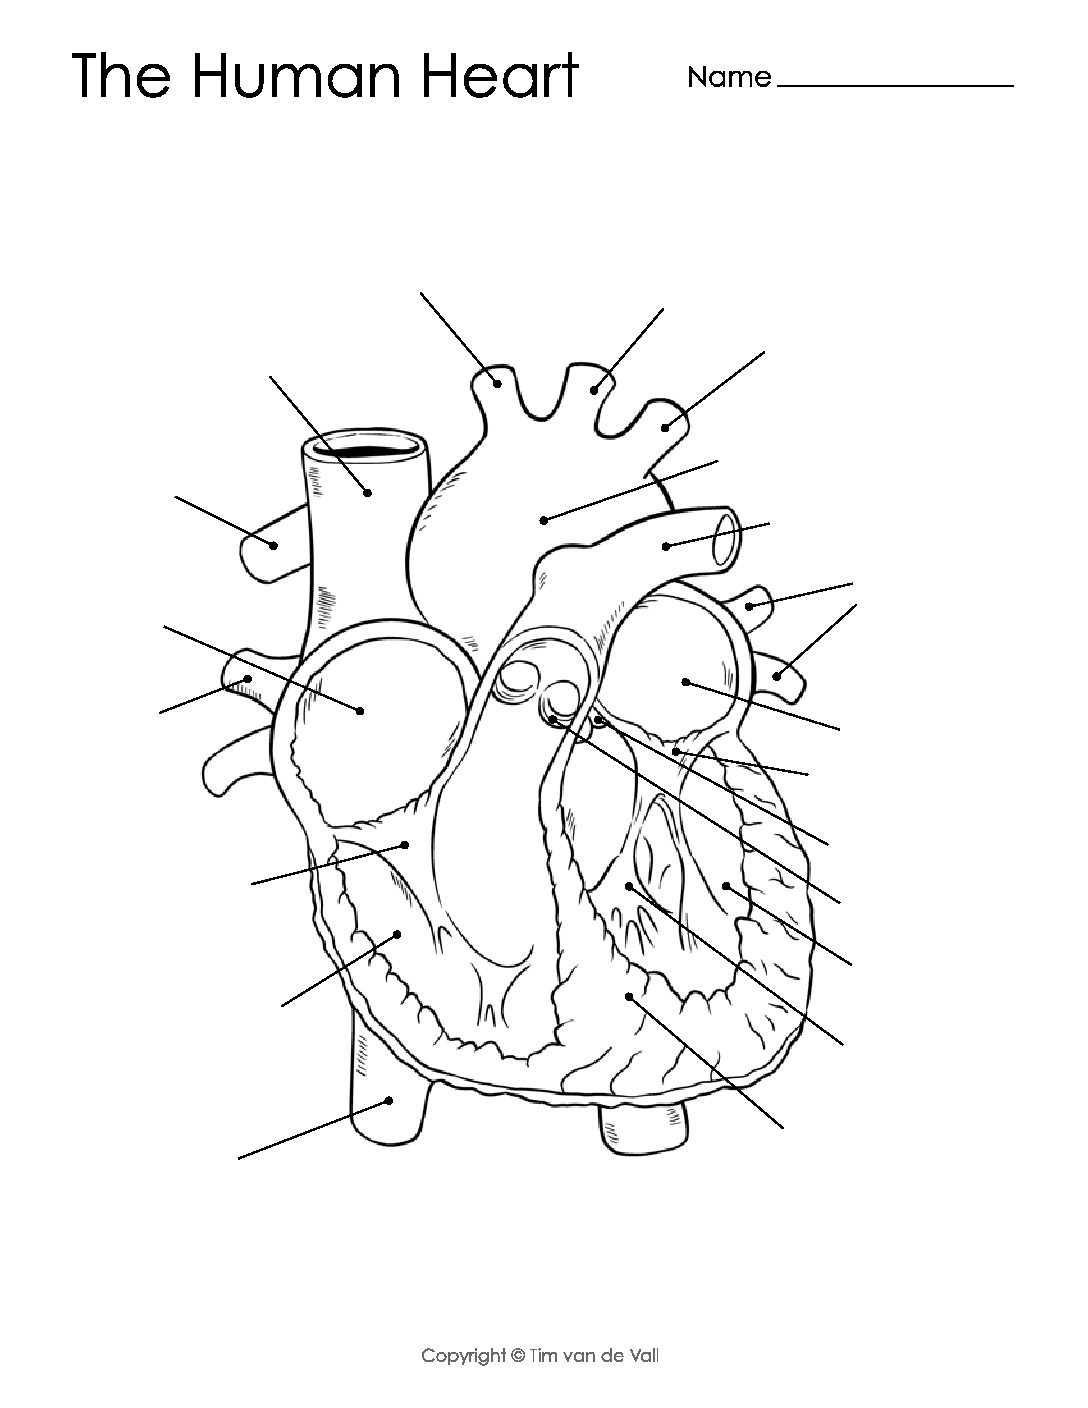 Label Heart Diagram Worksheet